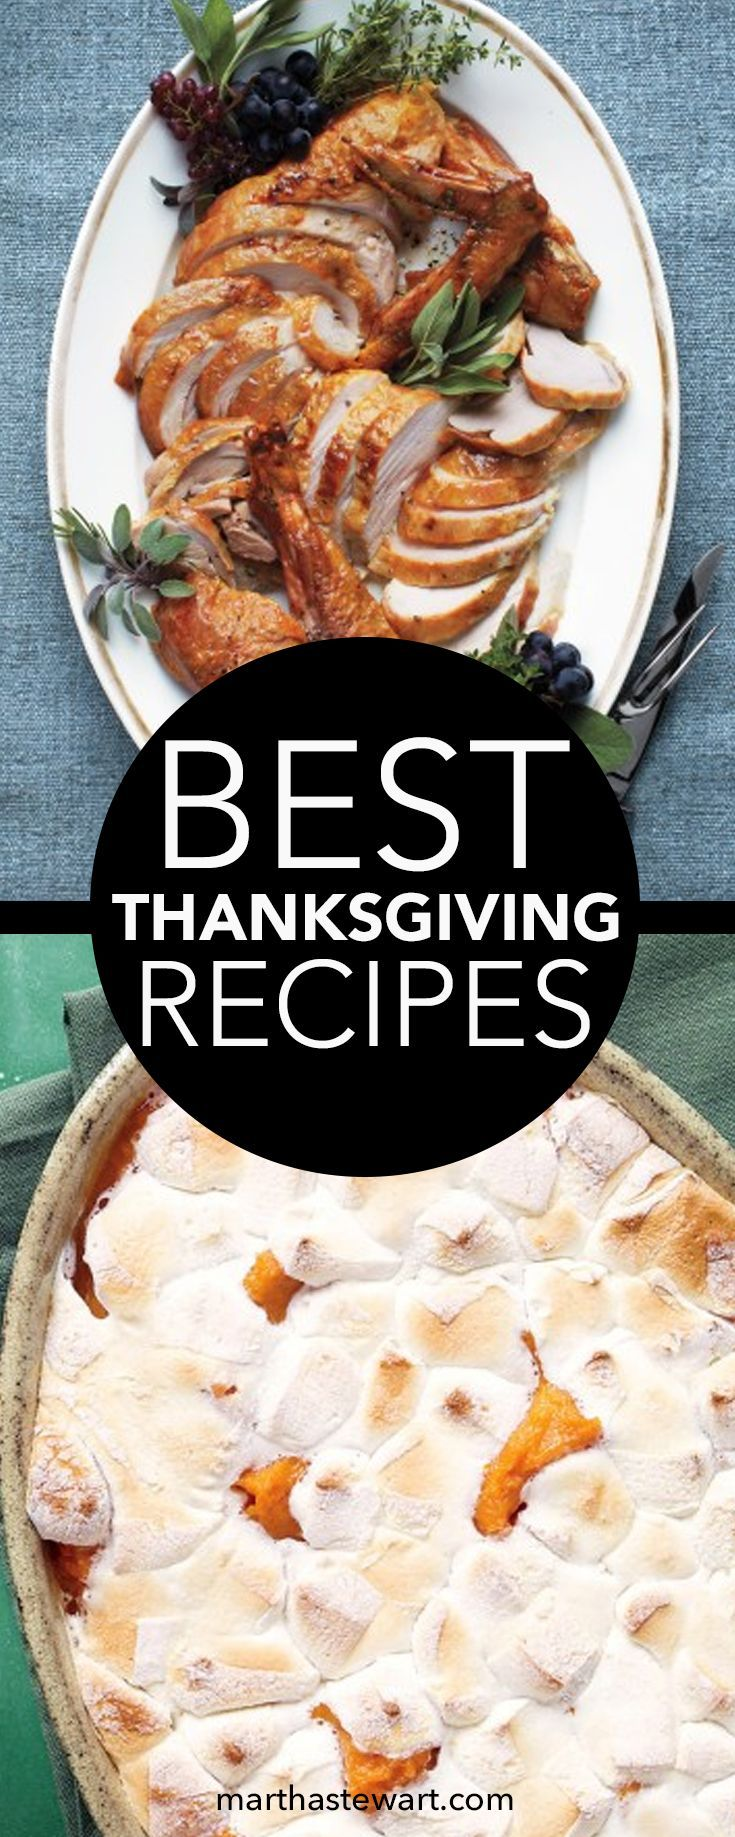 Part of the comfort of Thanksgiving is the routine: Every year, there's turkey and all the fixings. Reliable doesn't have to mean boring -- make the best of your traditional spread. Here are the absolute best recipes for all the Thanksgiving standbys.